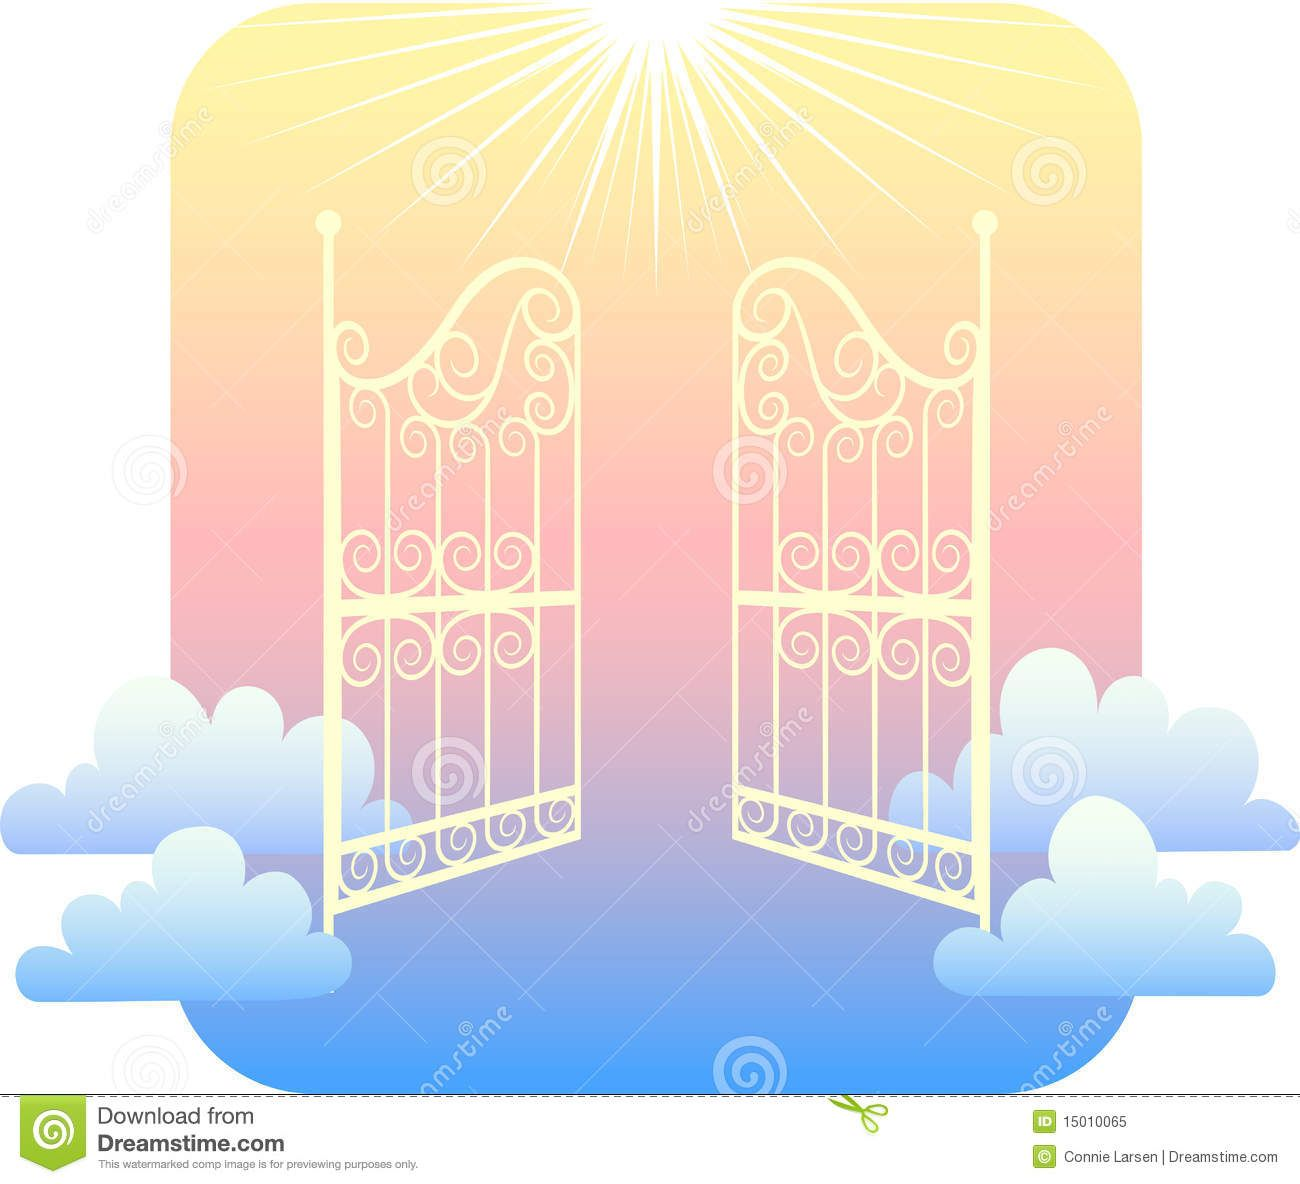 Gates of images pictures. Heaven clipart